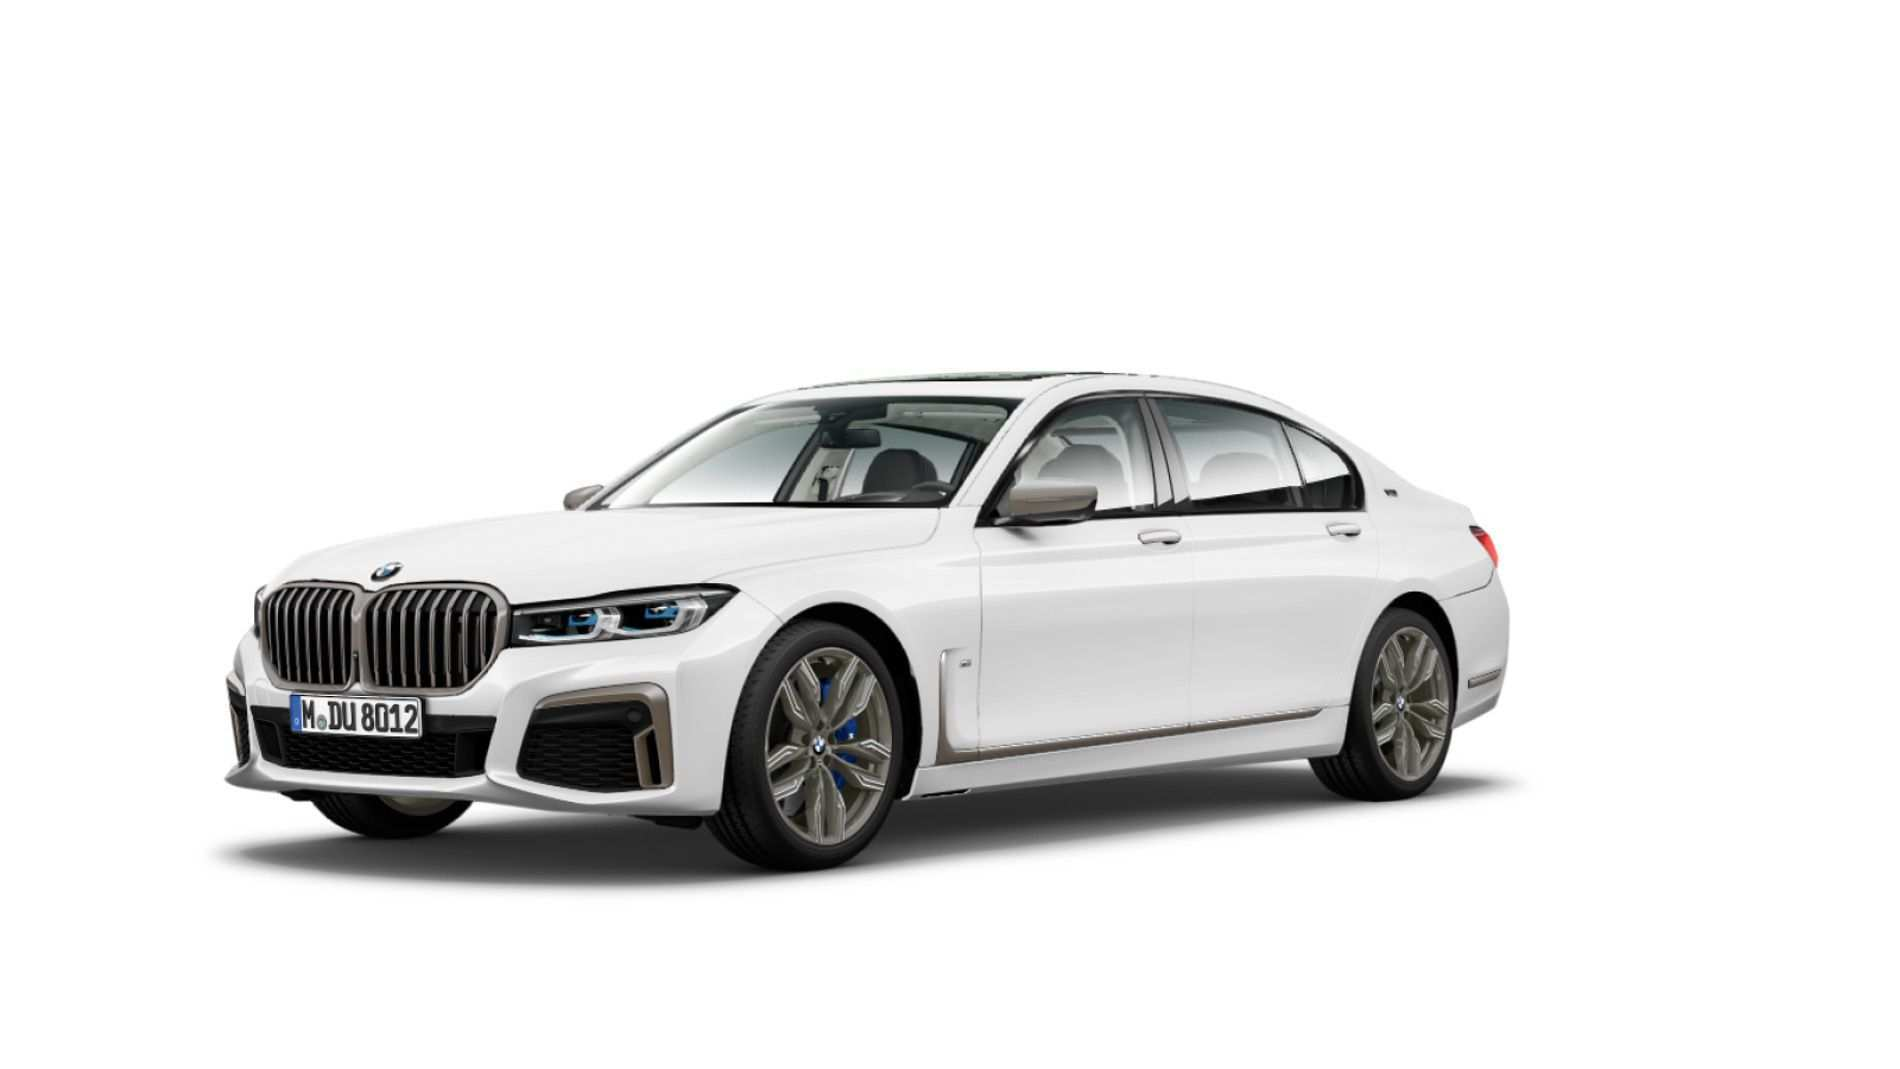 93 A 2019 BMW 7 Series Pictures